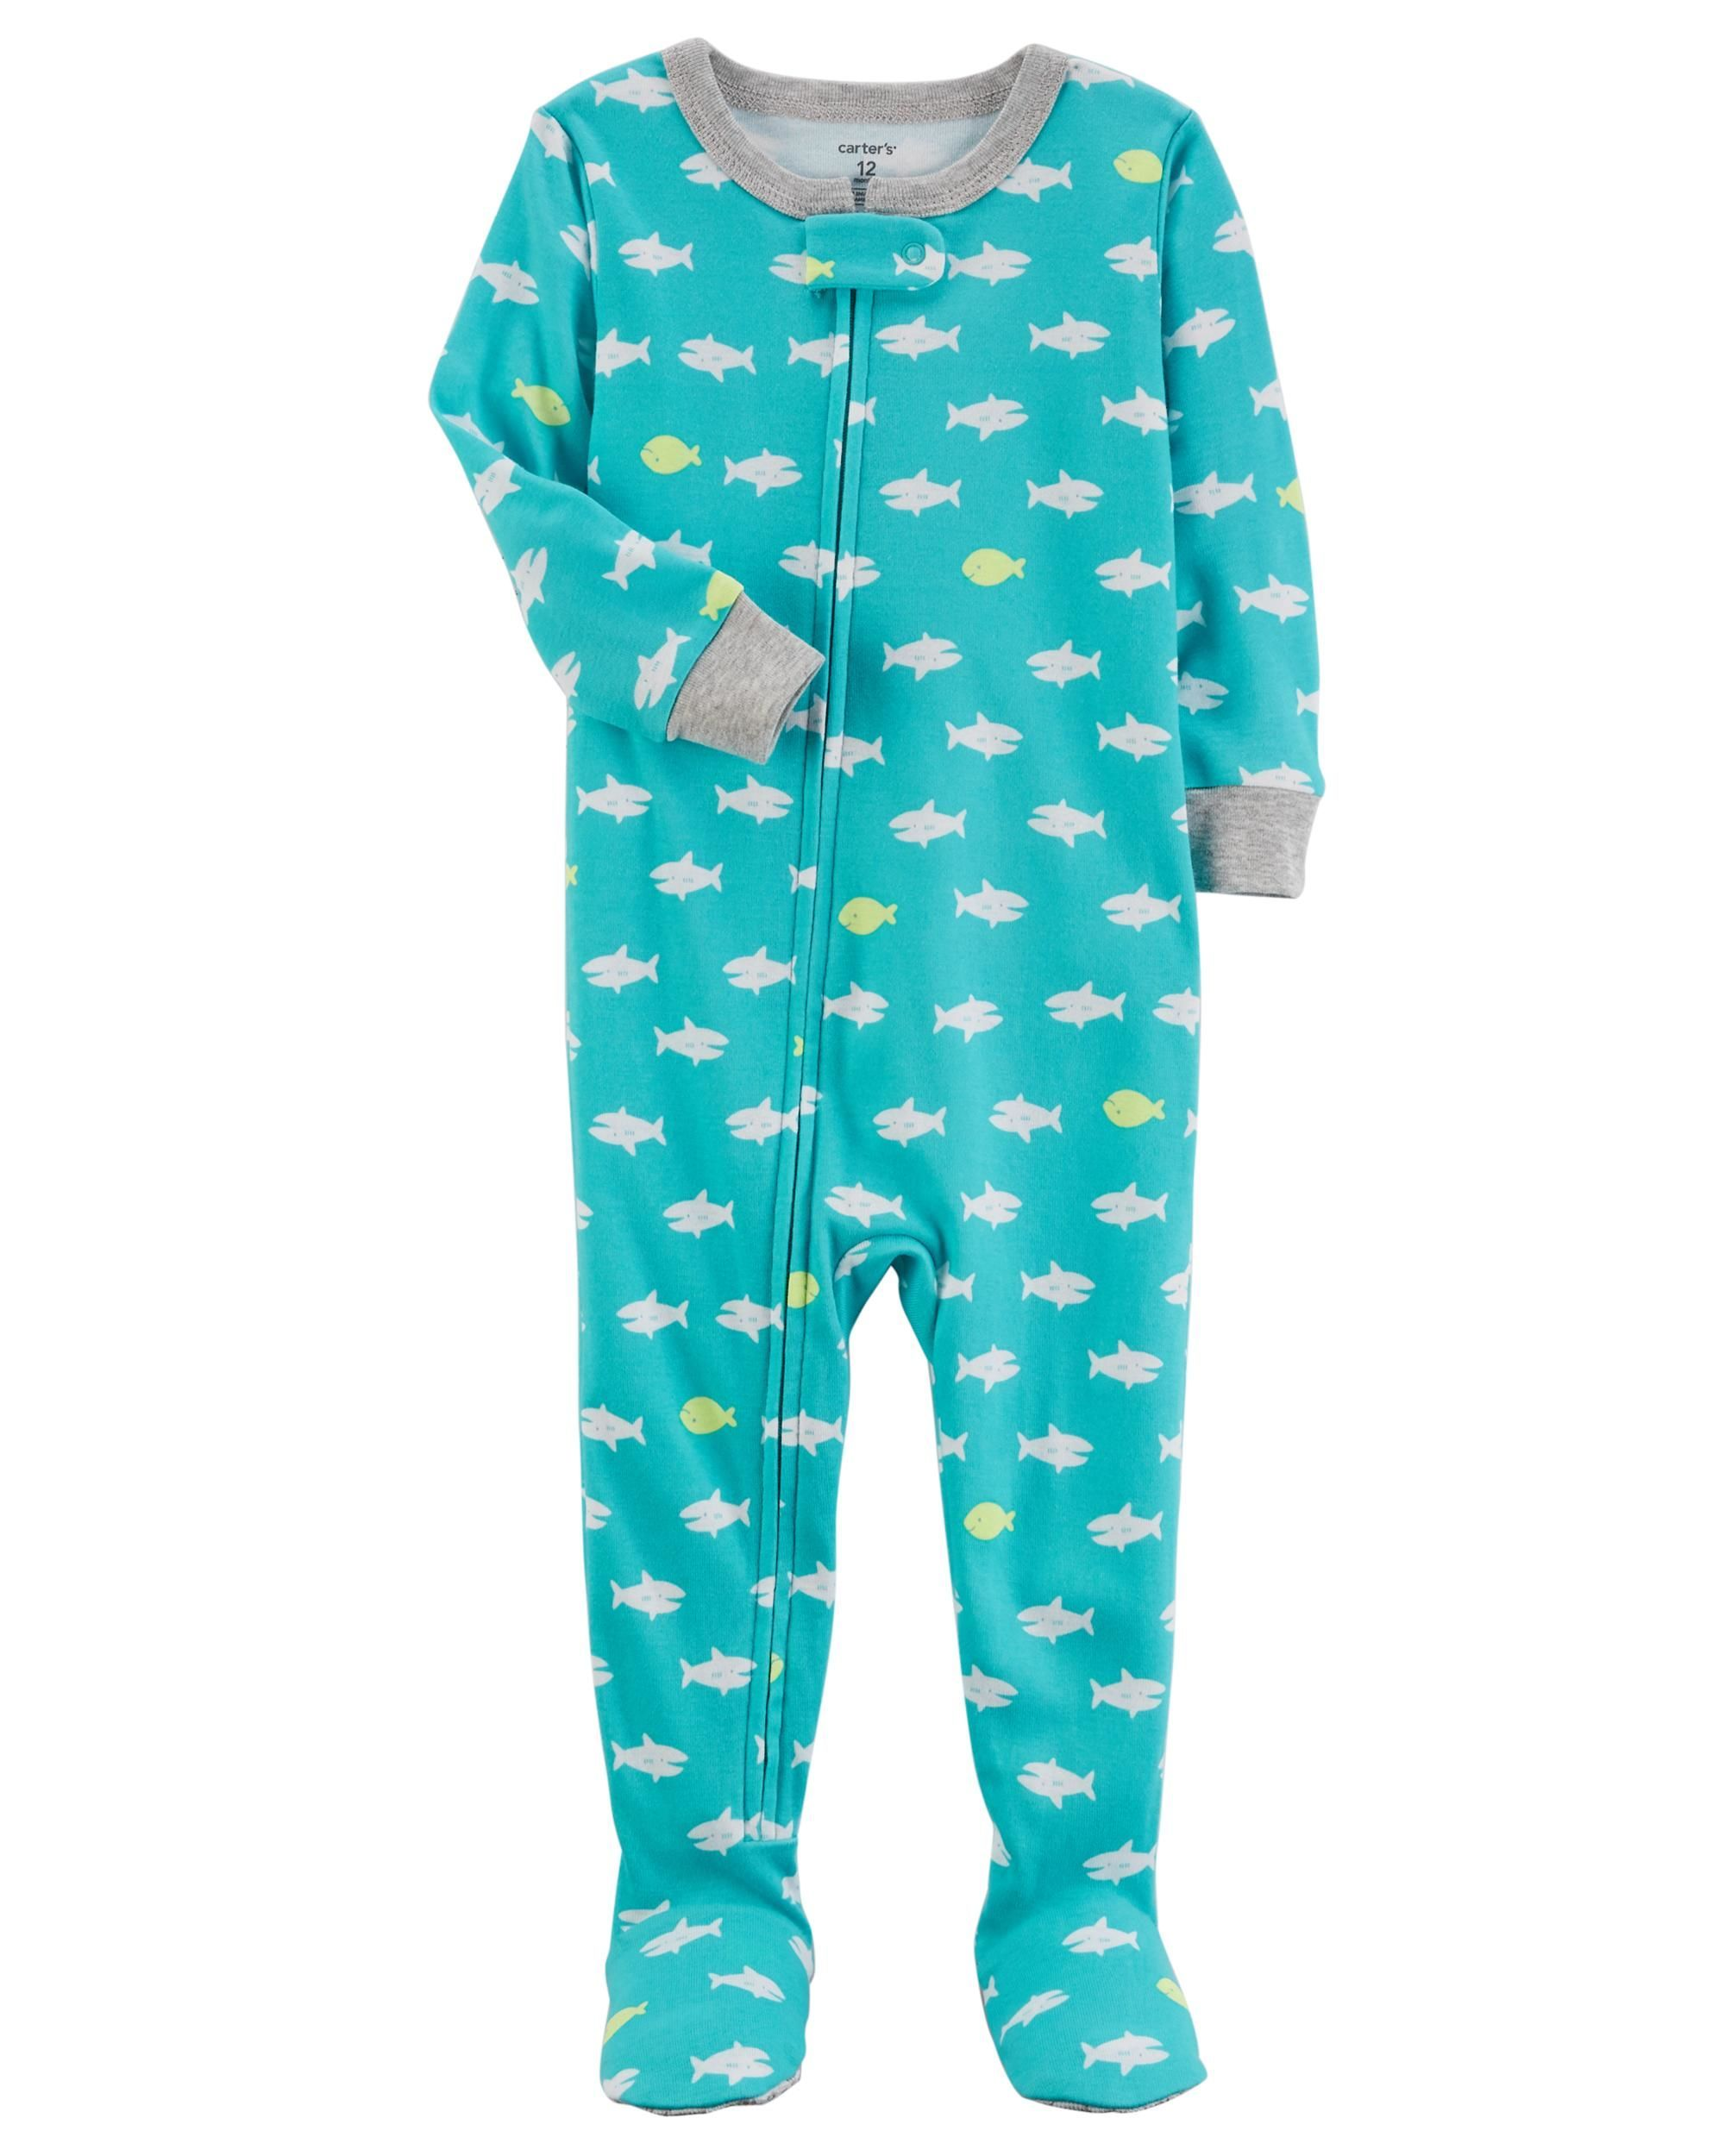 fb0074c0a3f9 1-Piece Neon Fish Snug Fit Cotton PJs